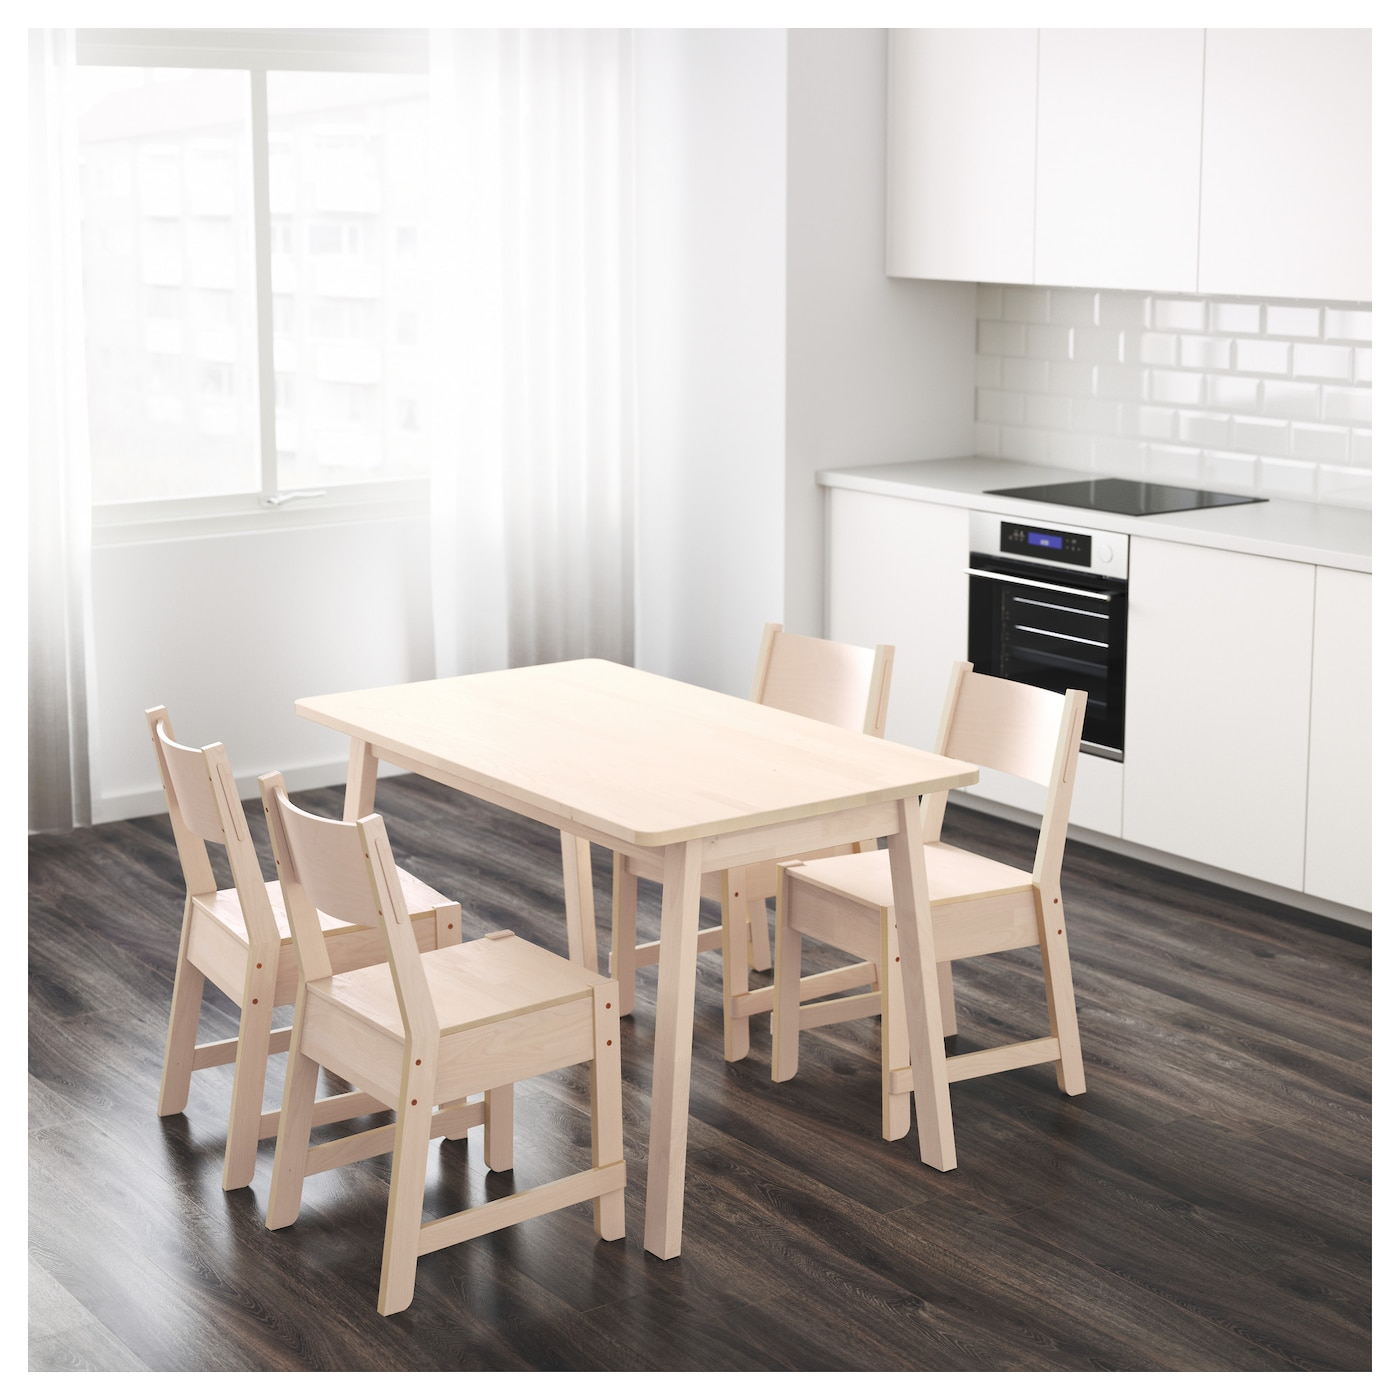 NORR…KER Table White birch 125x74 cm IKEA